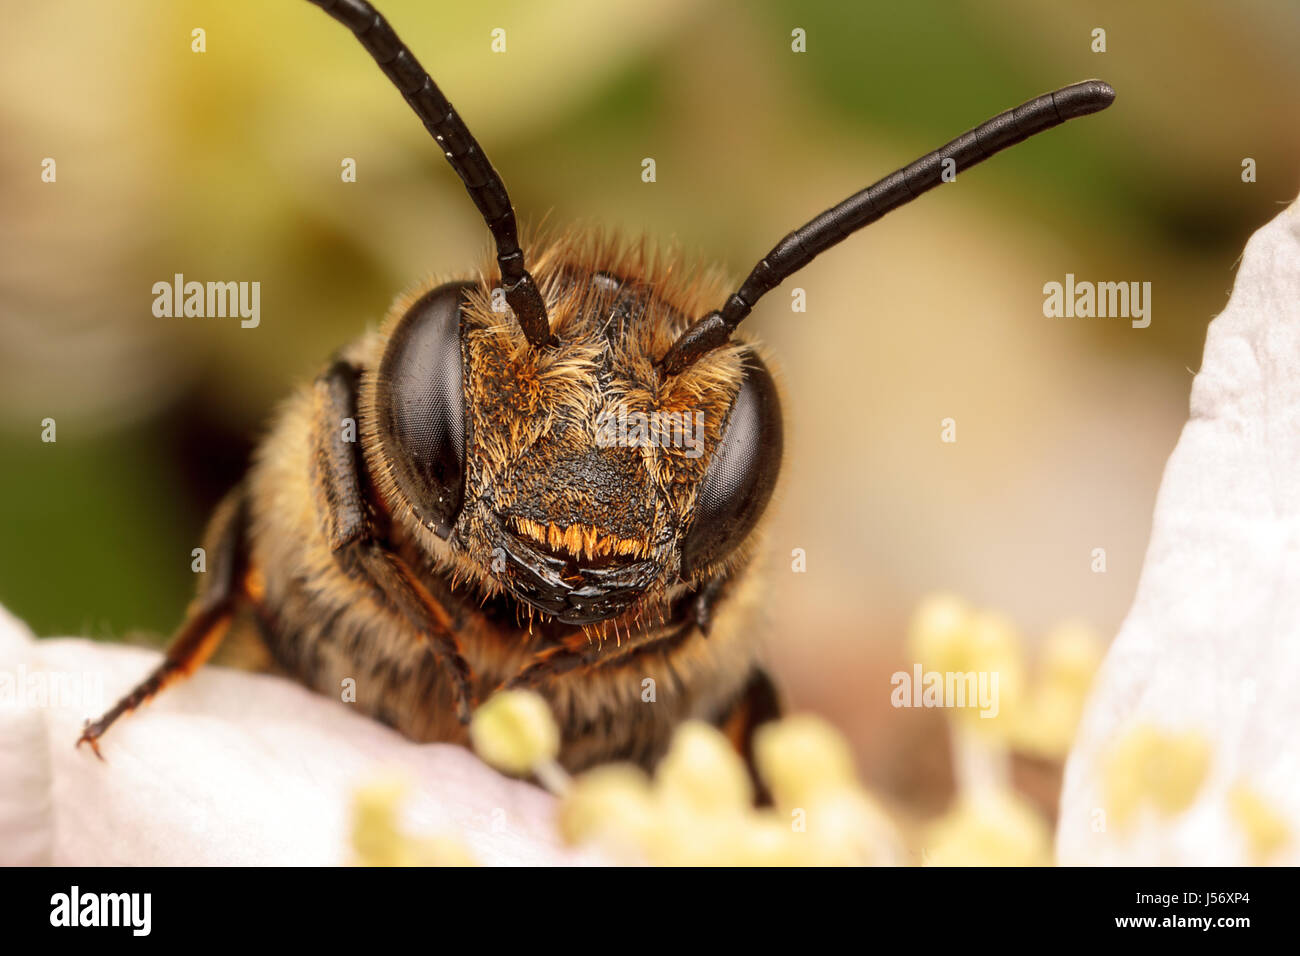 Leaf Cutter Cuckoo Bee - Stock Image